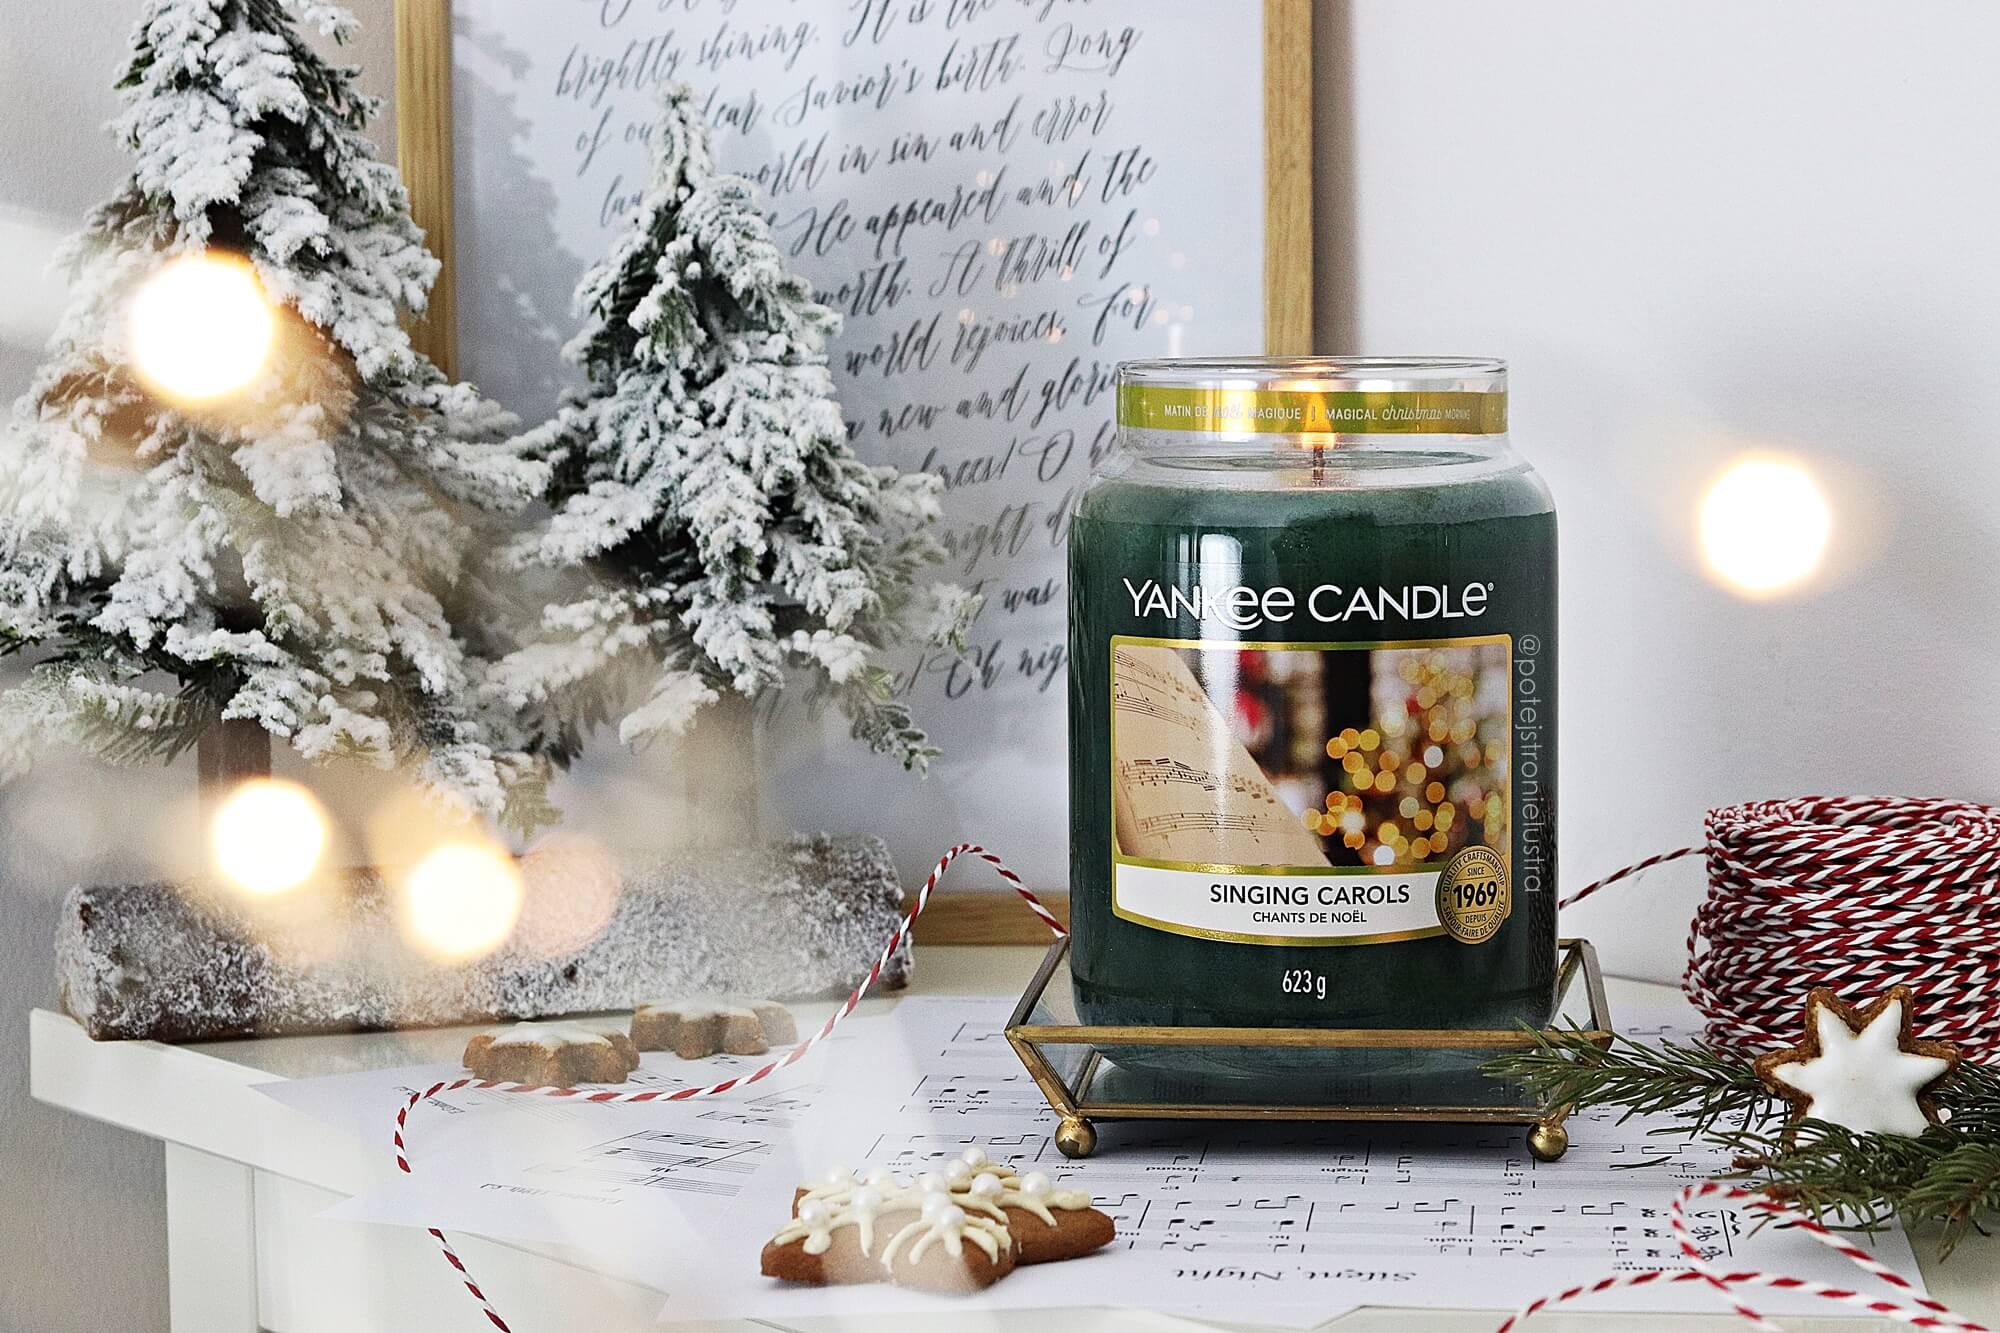 yankee candle singing carols recenzja